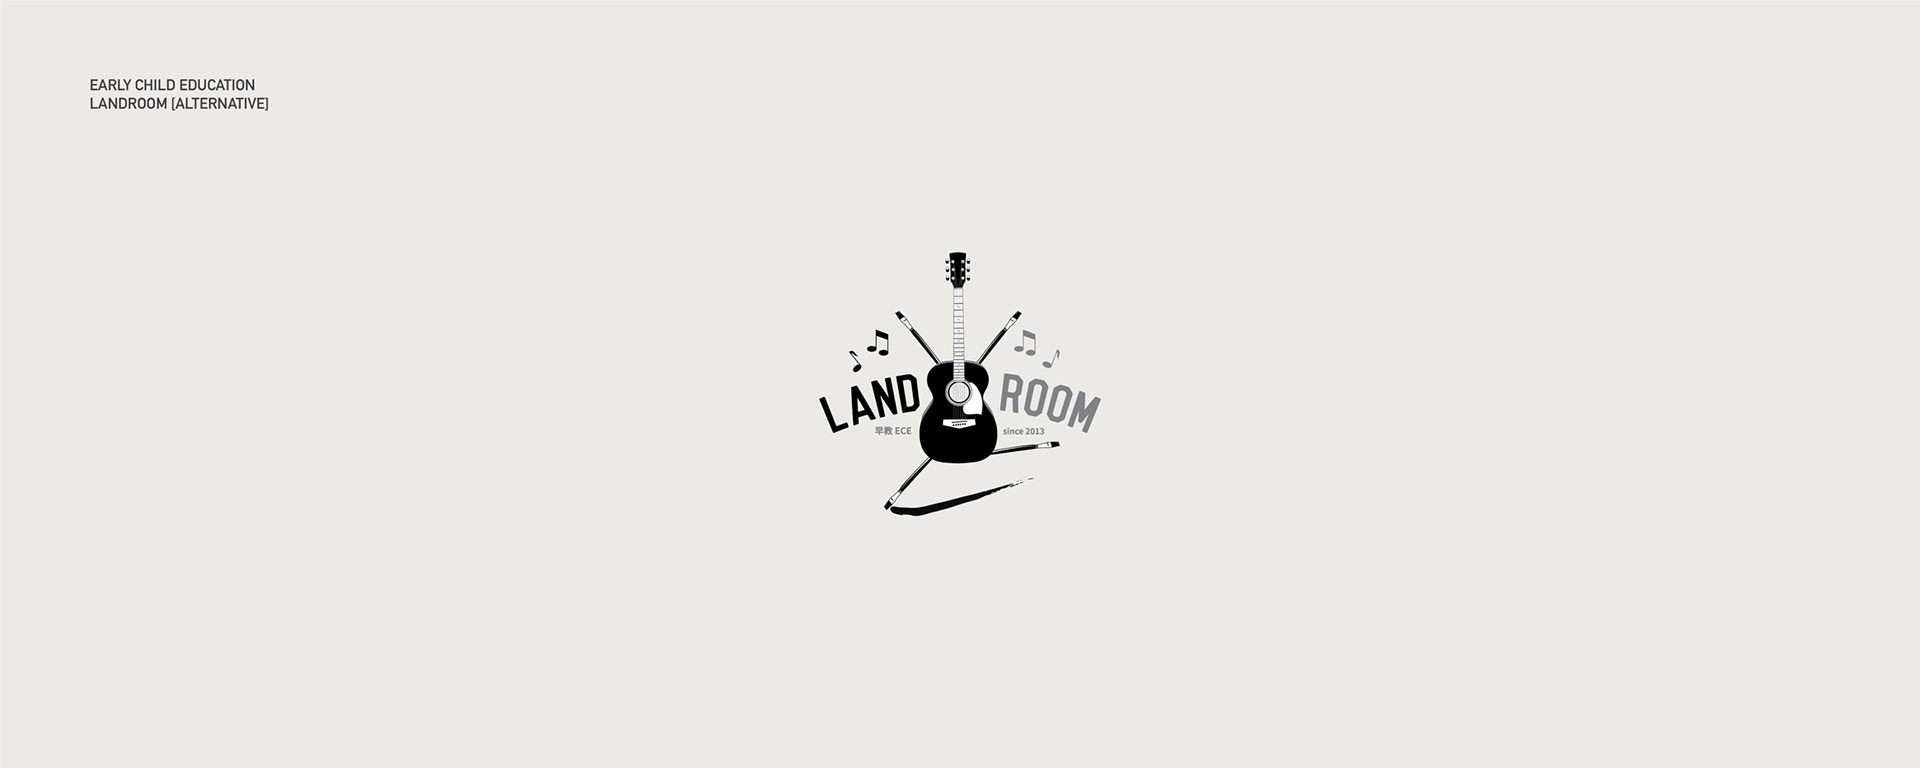 Landroom alternative